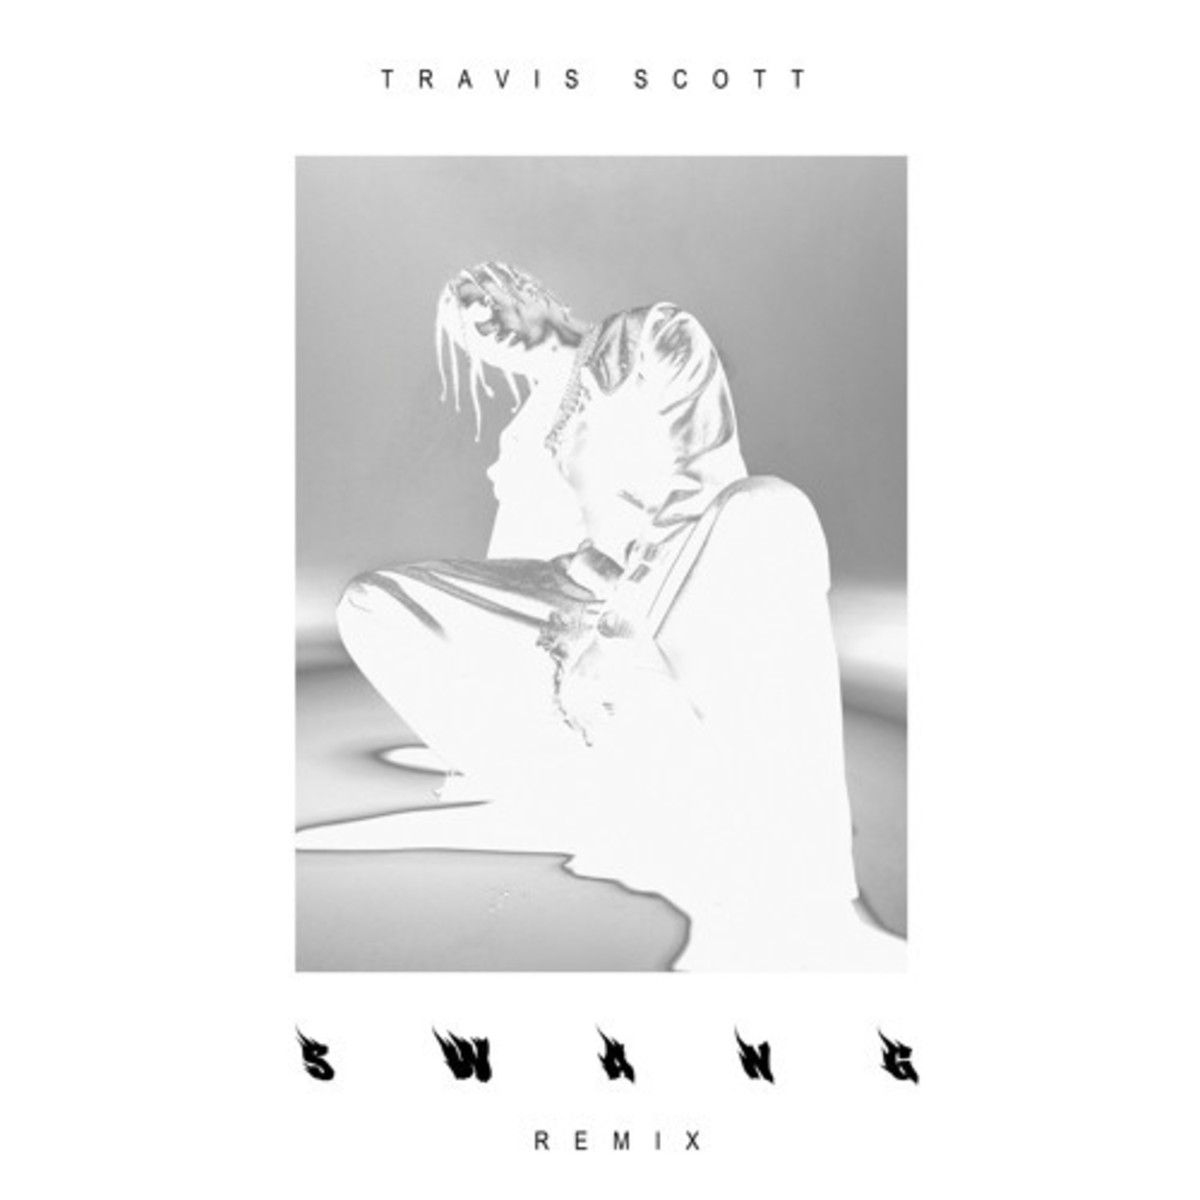 travis-scott-swang-remix.jpg